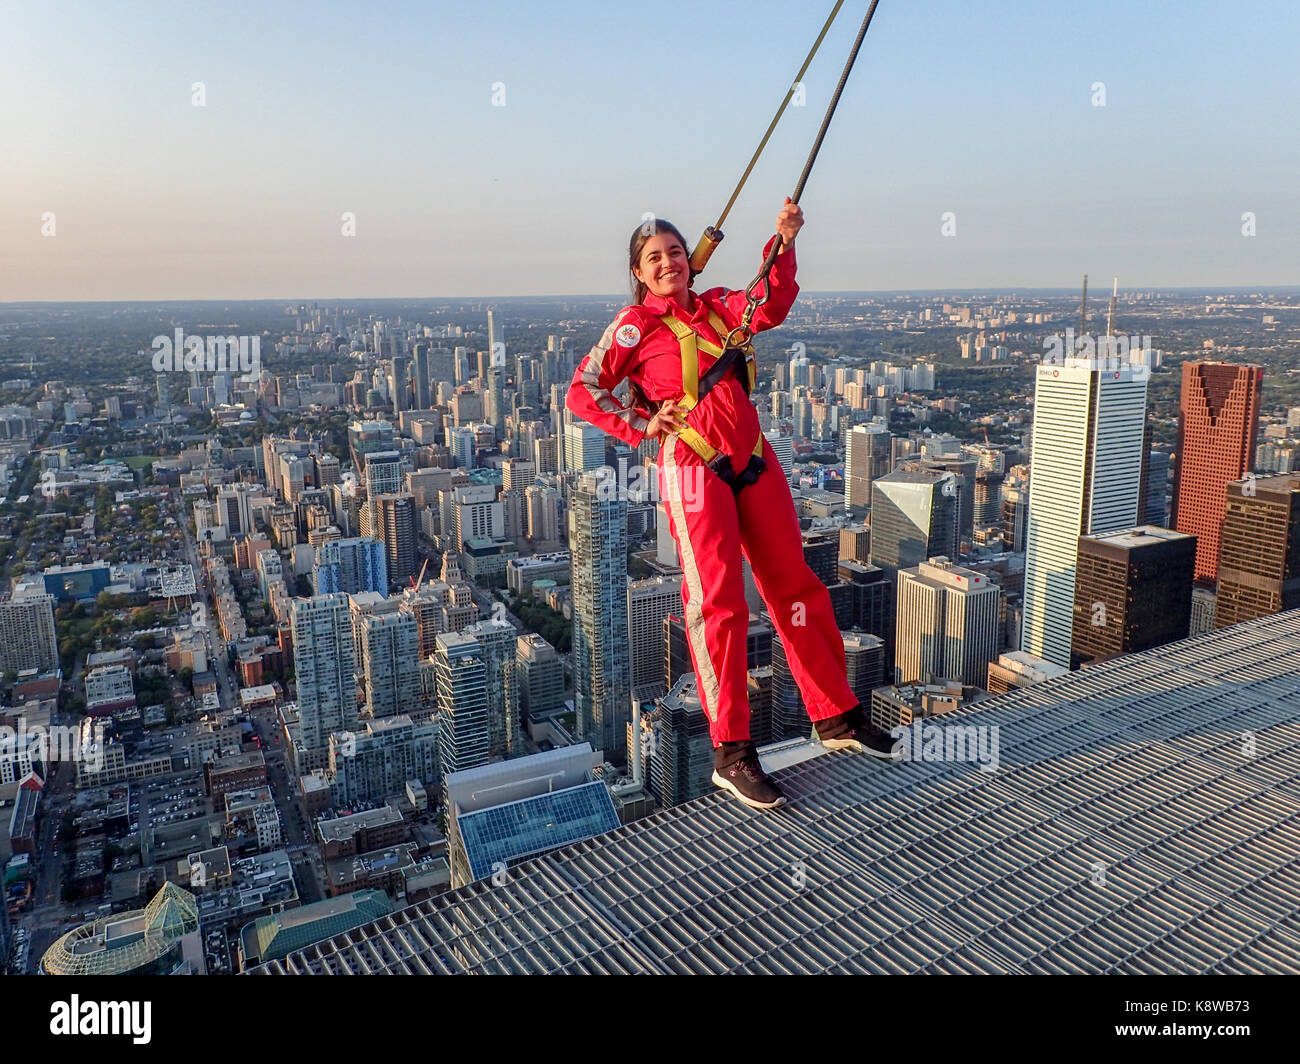 Toronto Canada Edgewalk At The Cn Tower In The Late Afternoon Stock Photo Alamy